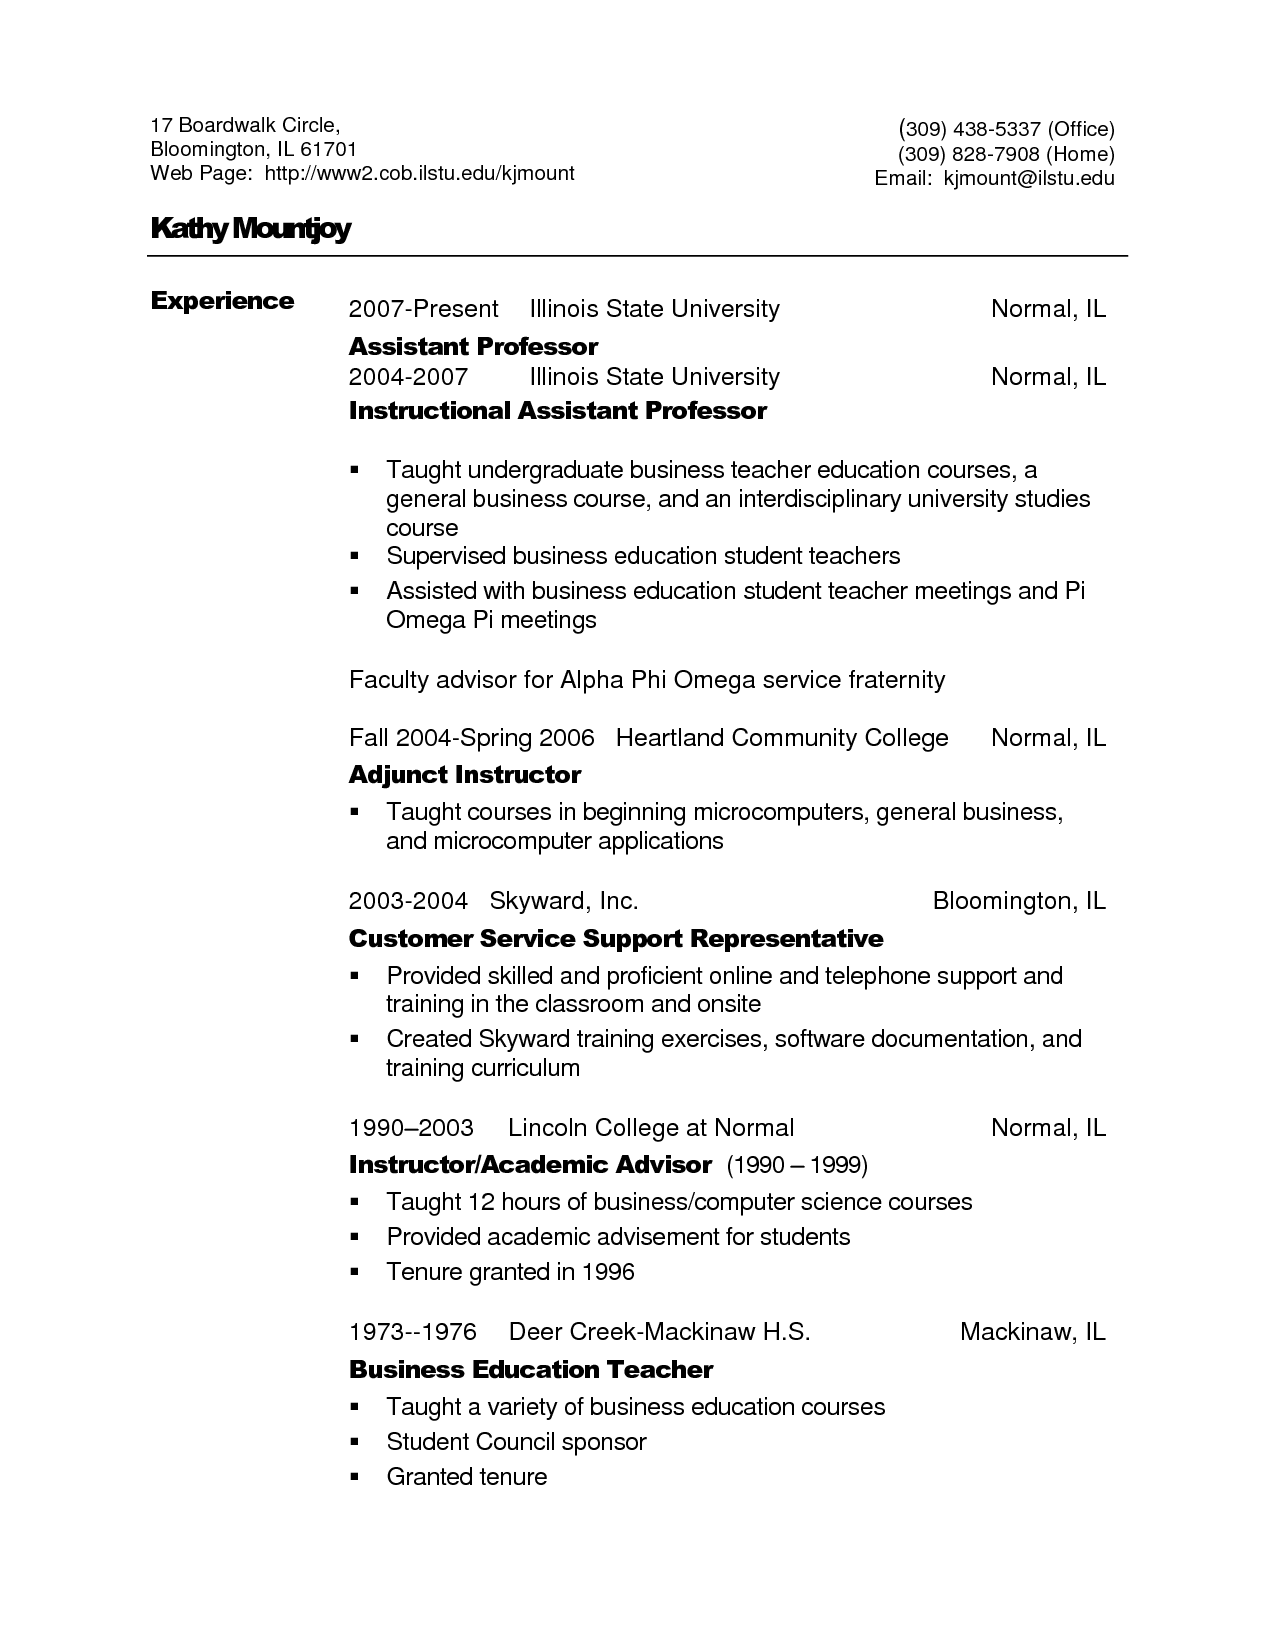 english resume template seeabruzzoresume templates cover letter examples